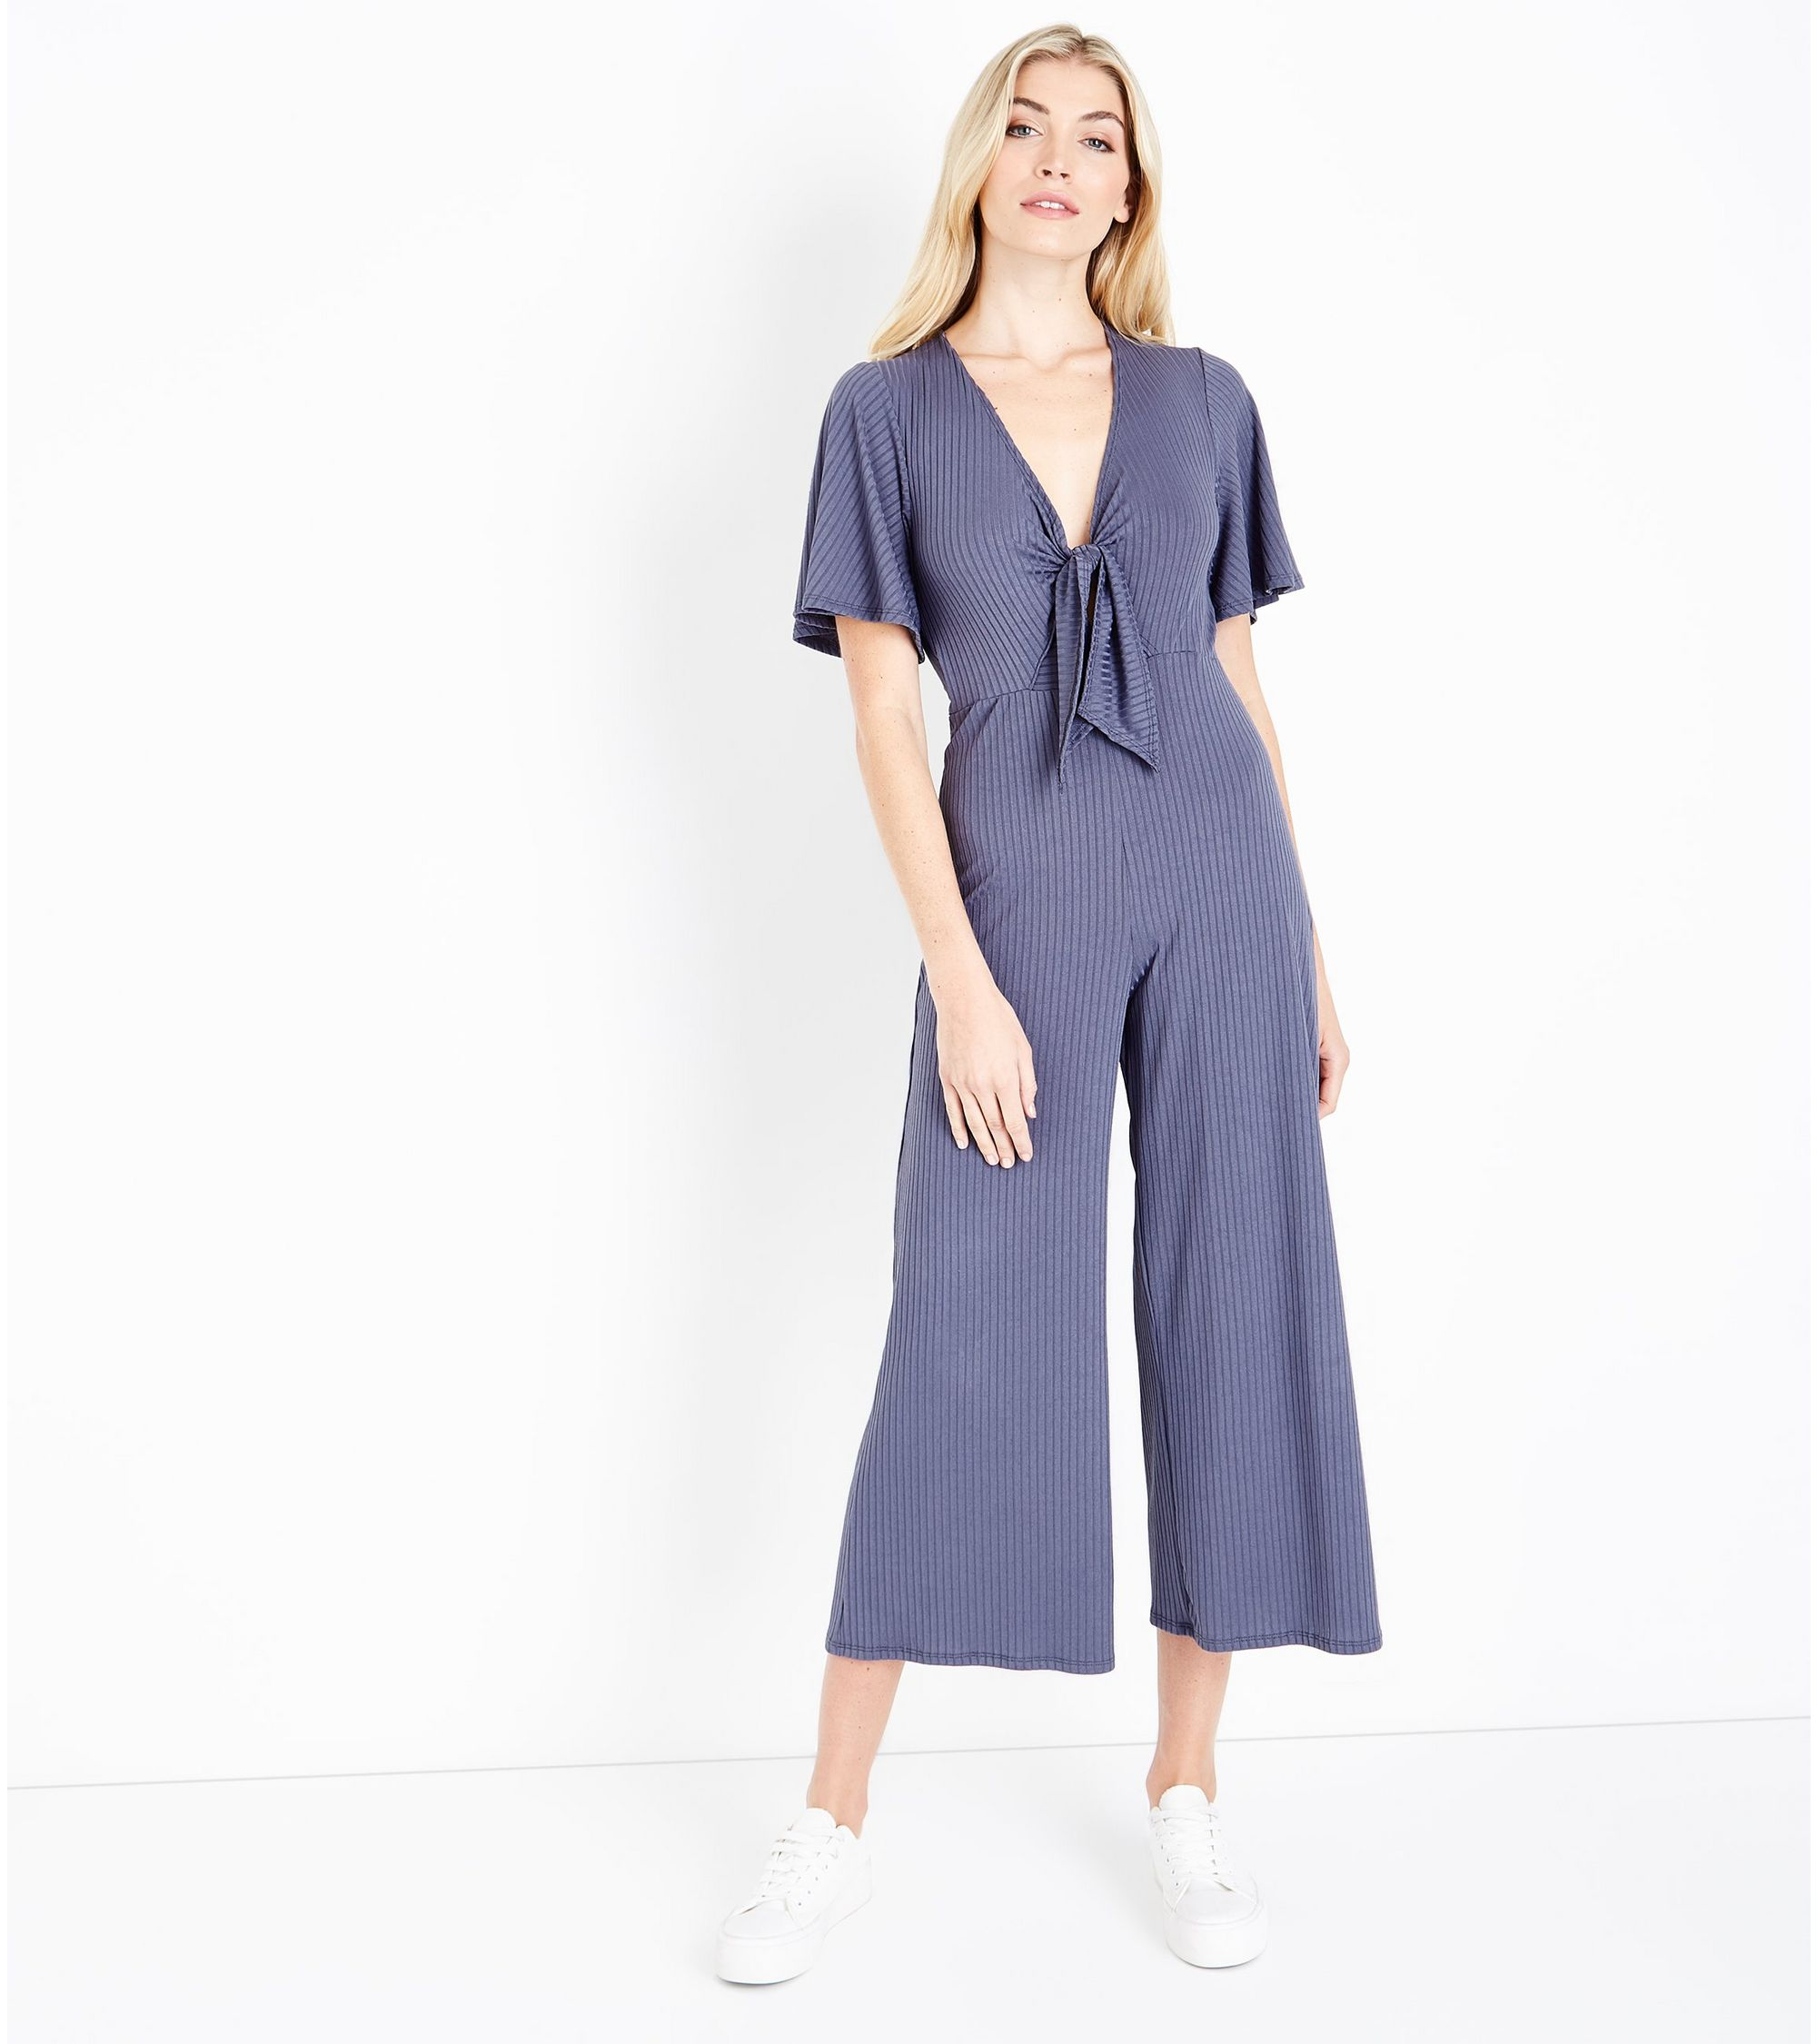 b8ff1f96387a New Look Tall Grey Tie Front Ribbed Culotte Jumpsuit at £9